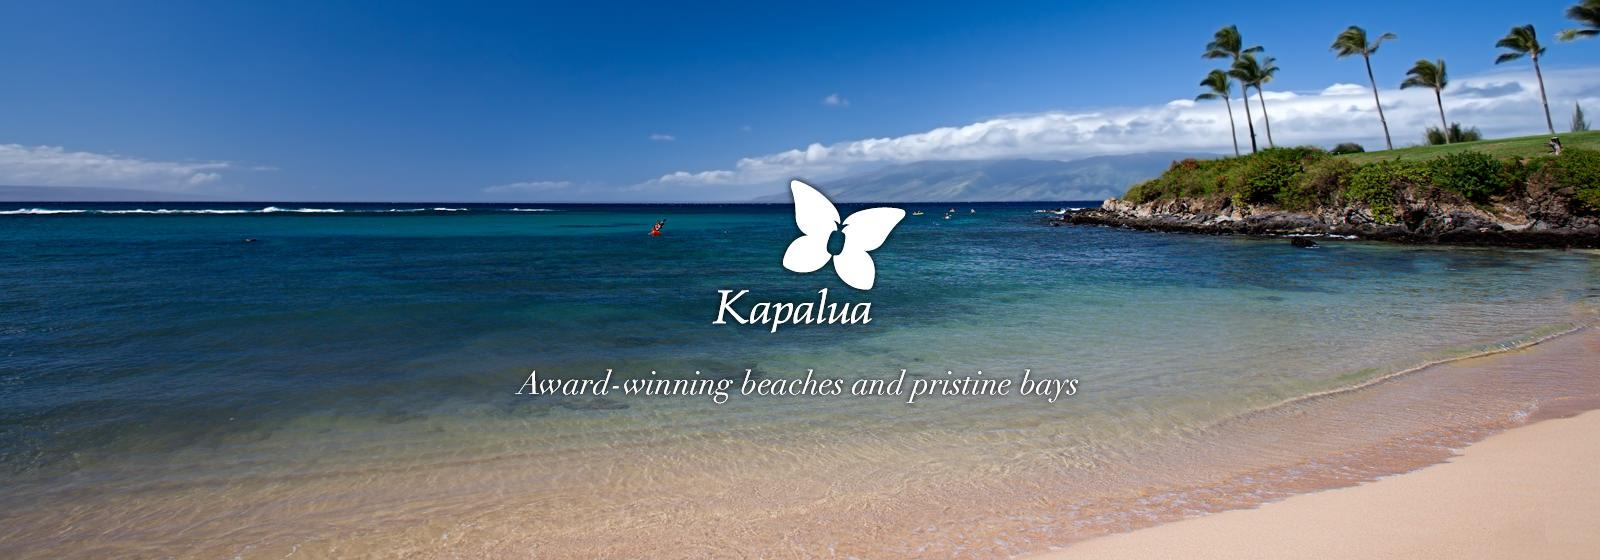 Kapalua Resort Maui Hawaii Real Estate Maui Resort